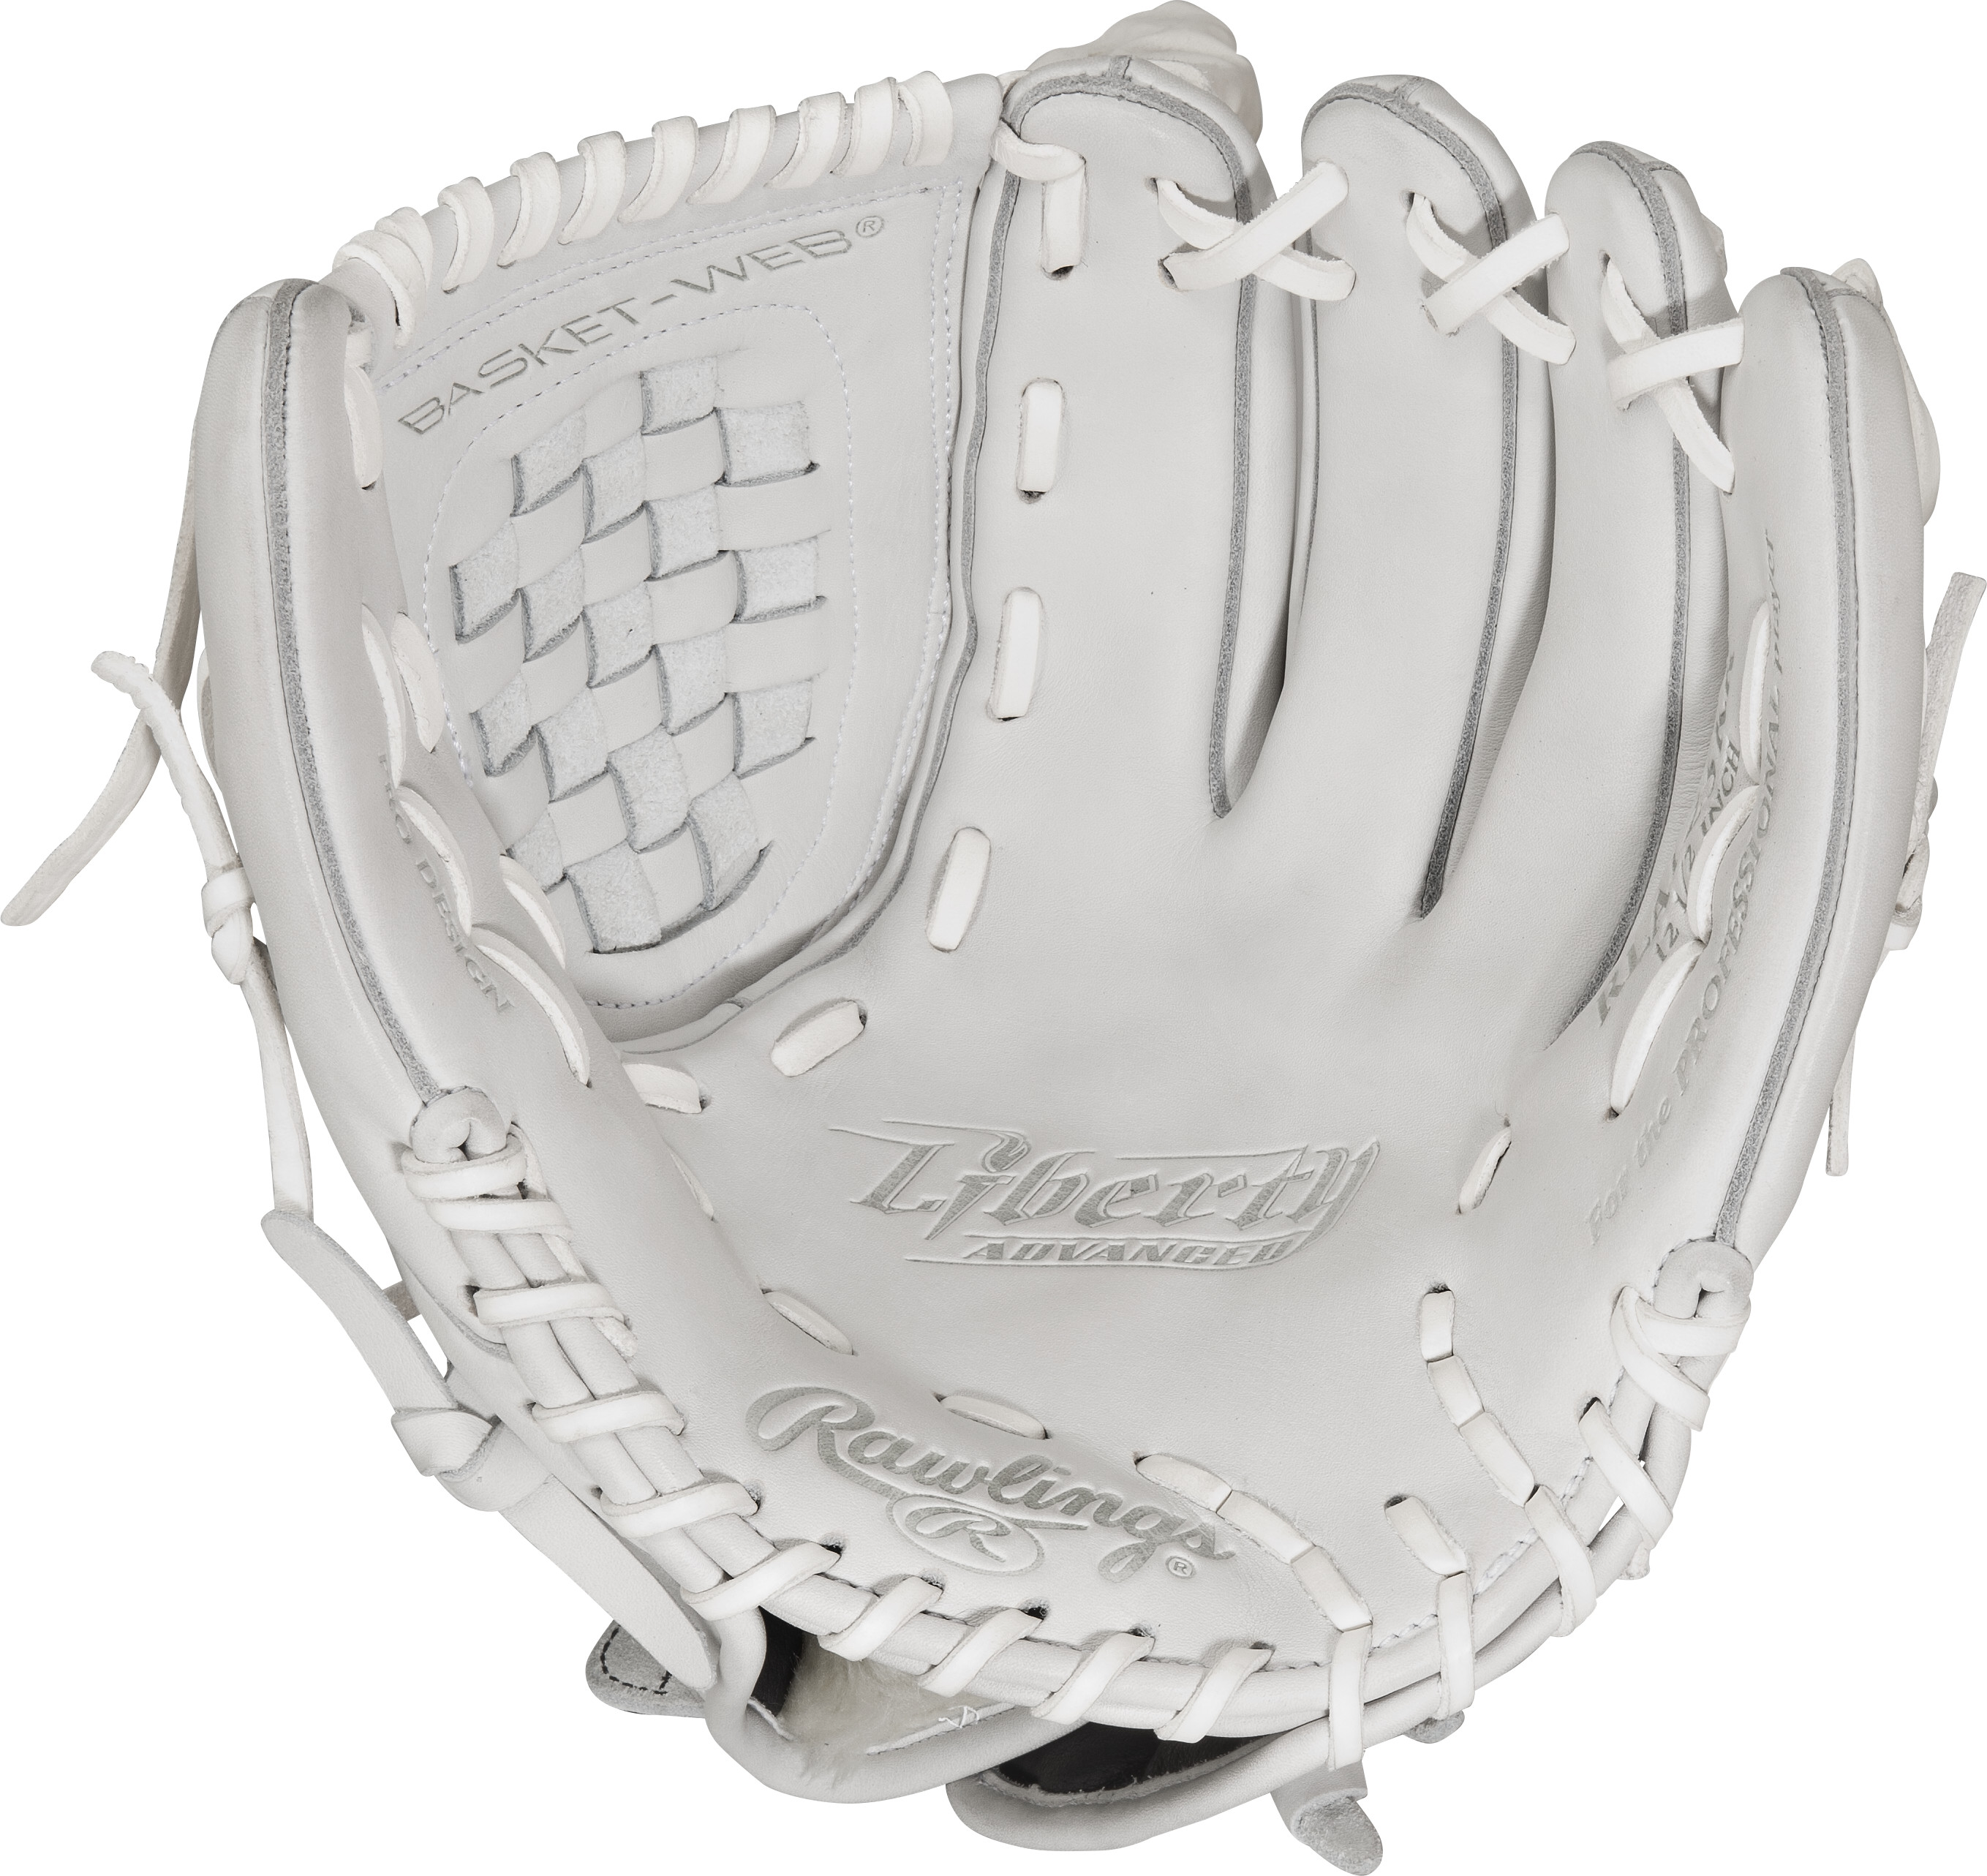 http://www.bestbatdeals.com/images/gloves/rawlings/RLA125KR_palm.jpg